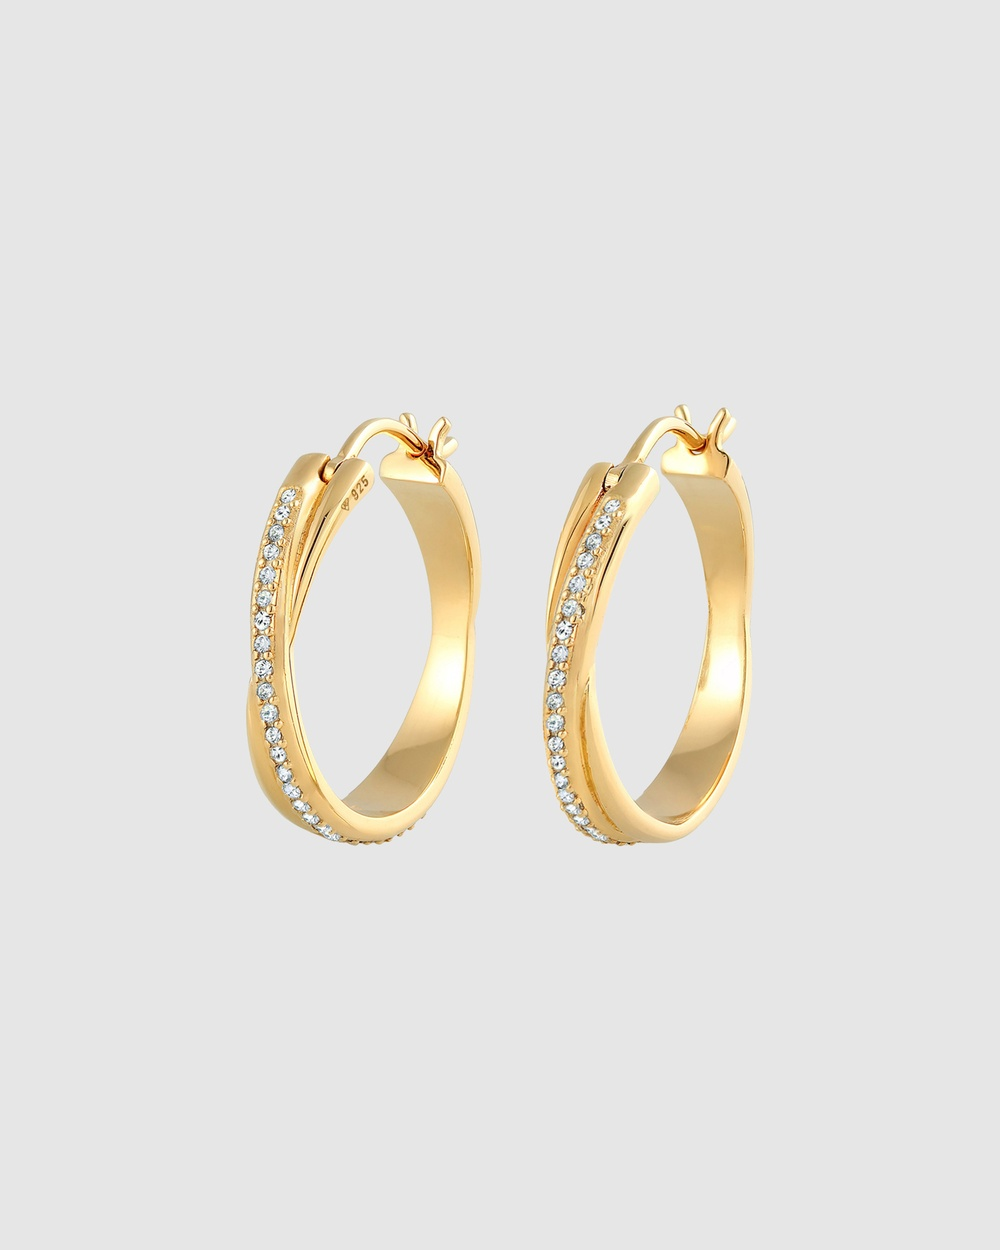 Elli Jewelry Earrings Creole Intertwined Crystal in 925 Sterling Silver Gold Plated Jewellery Gold